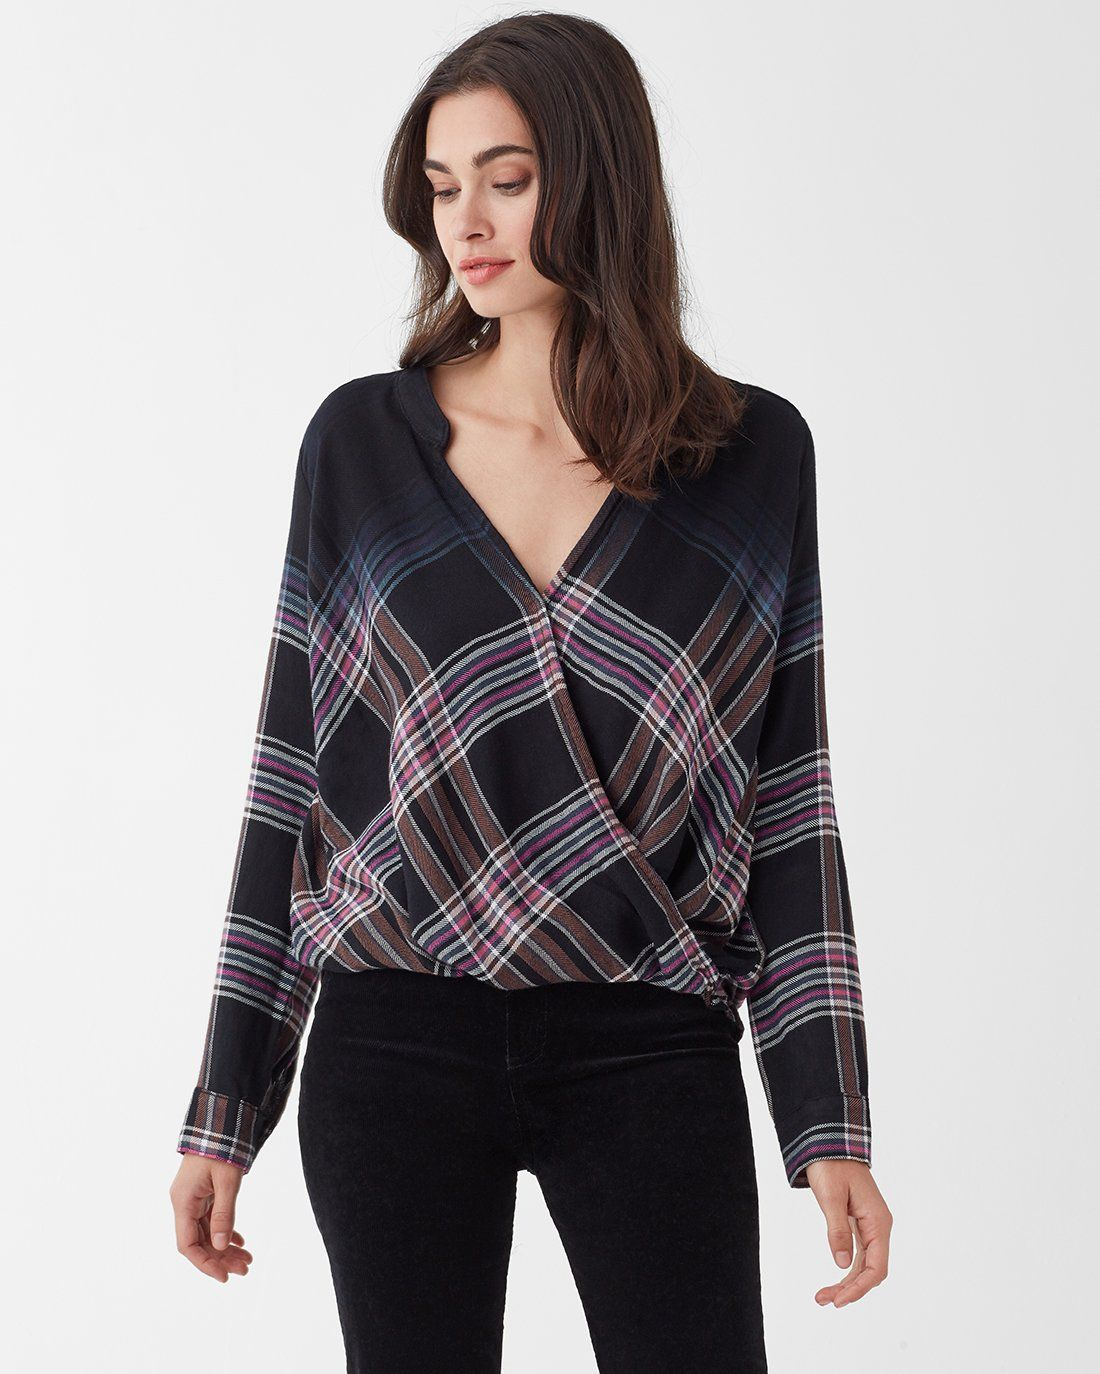 7e0e7cd9cb2e3 Hyperion Plaid Surplice Top